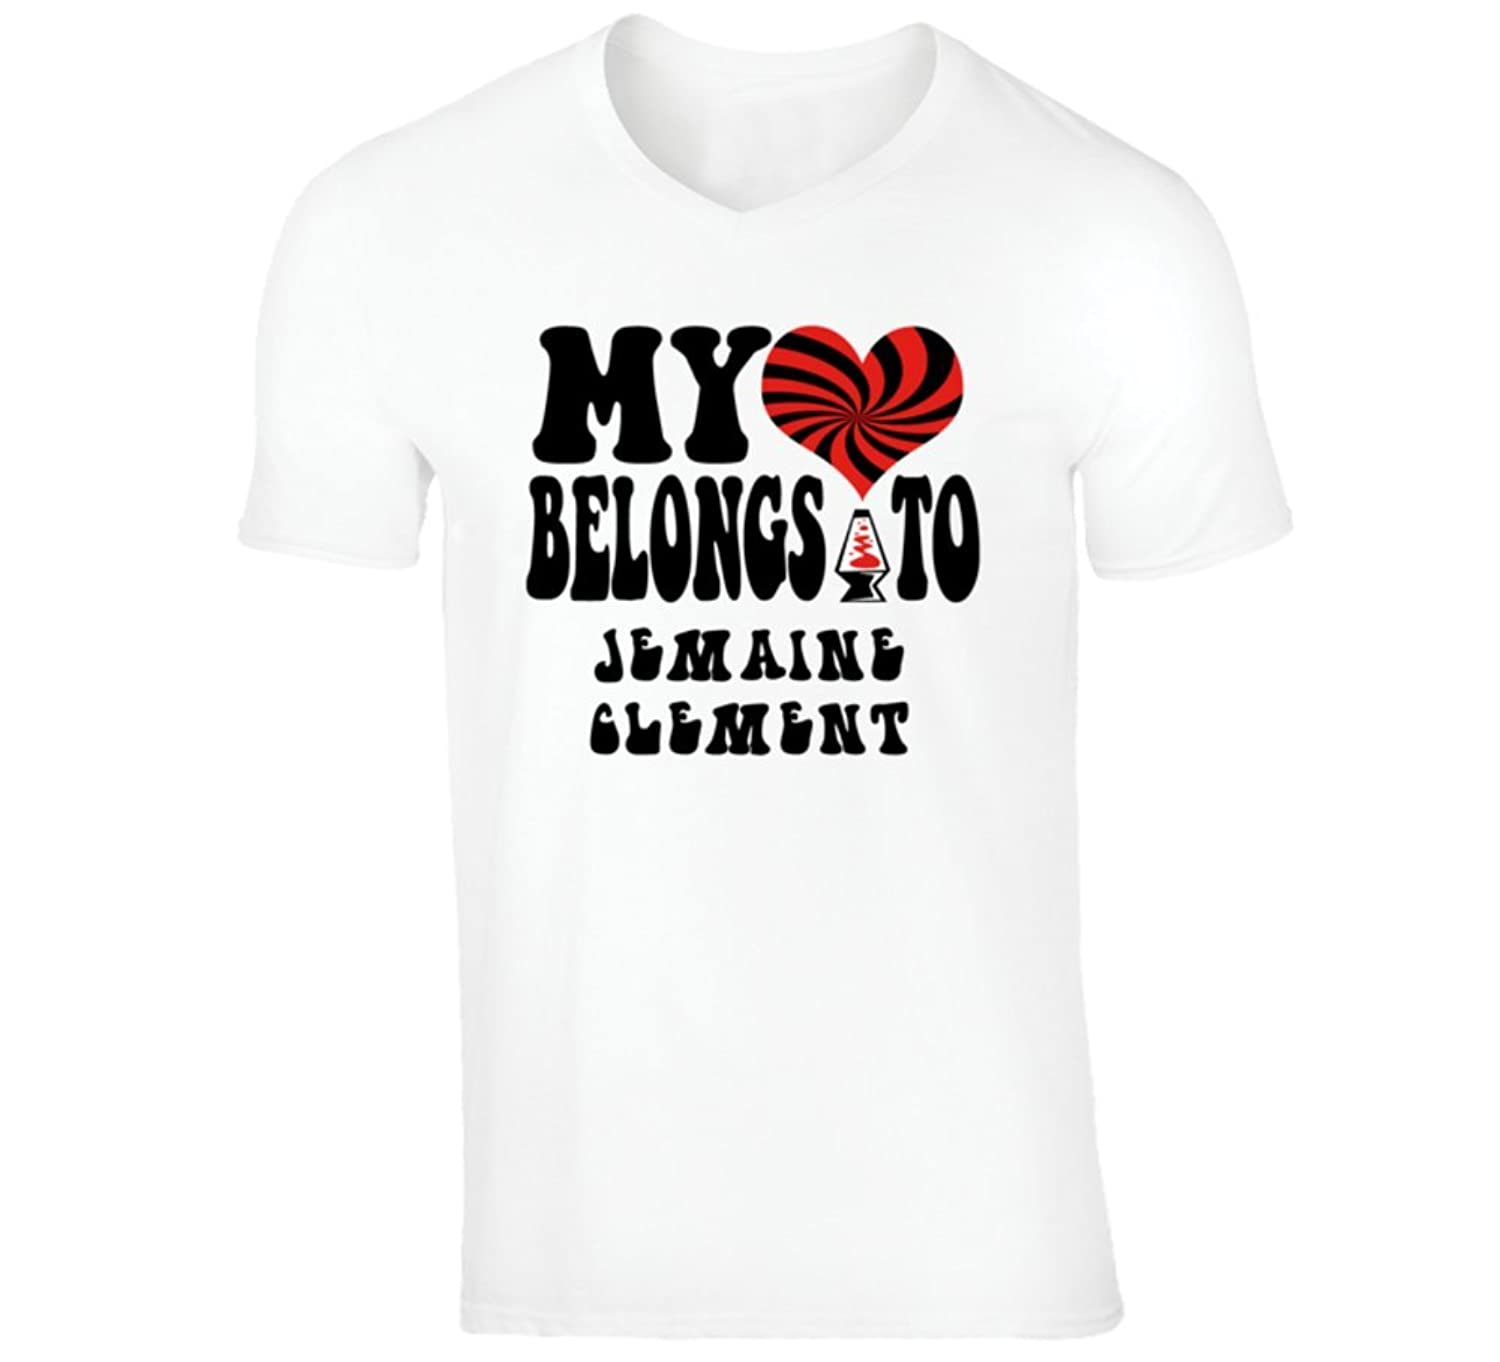 Jemaine Clement Funny Comedian Comedy My Heart Belongs To V-Neck T shirt